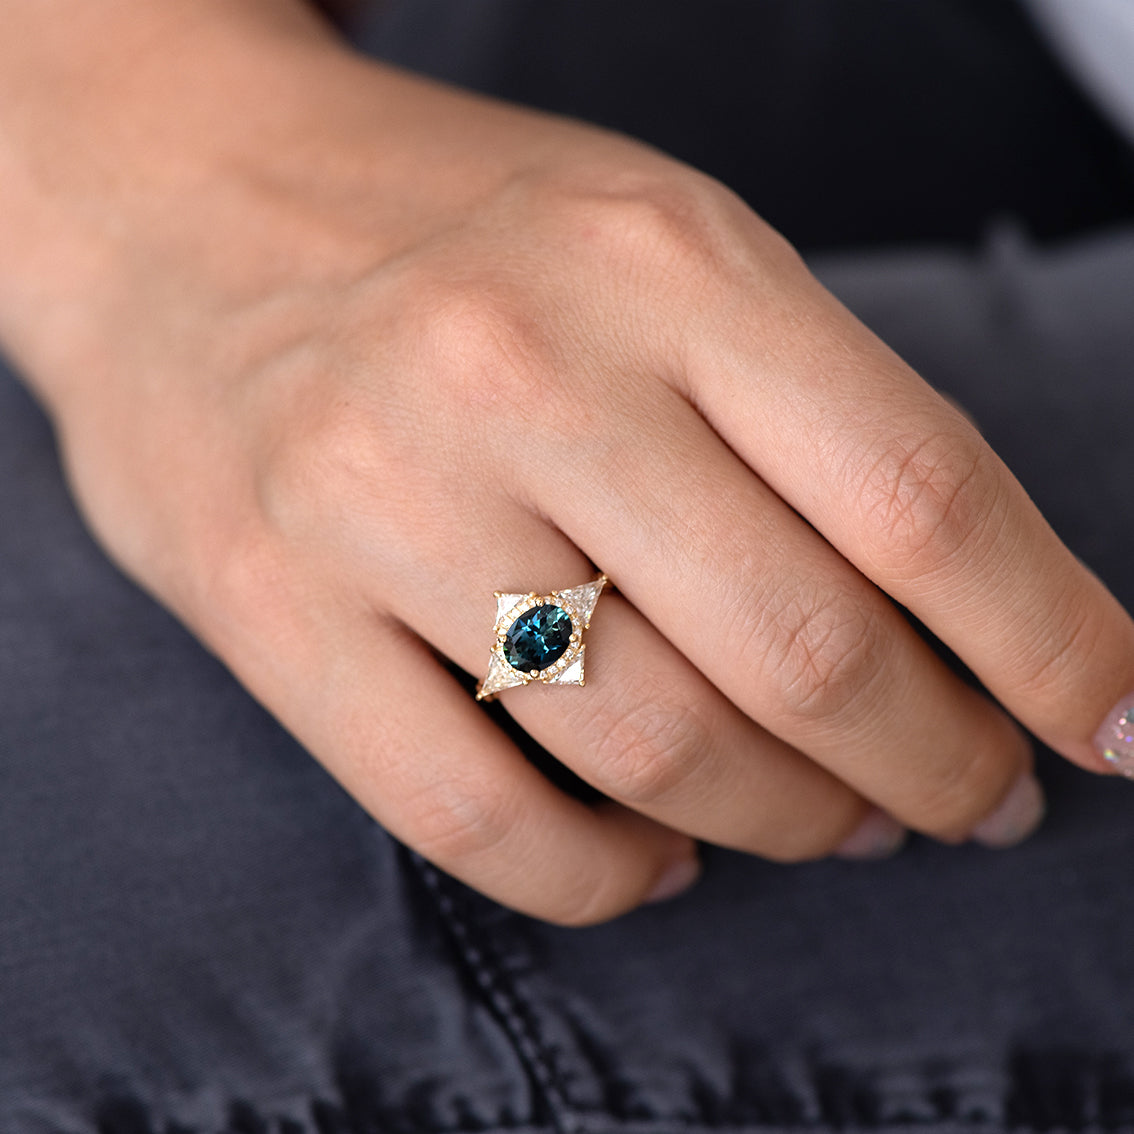 Teal Sapphire Deco Ring with Triangle Diamonds on jeans.jpg